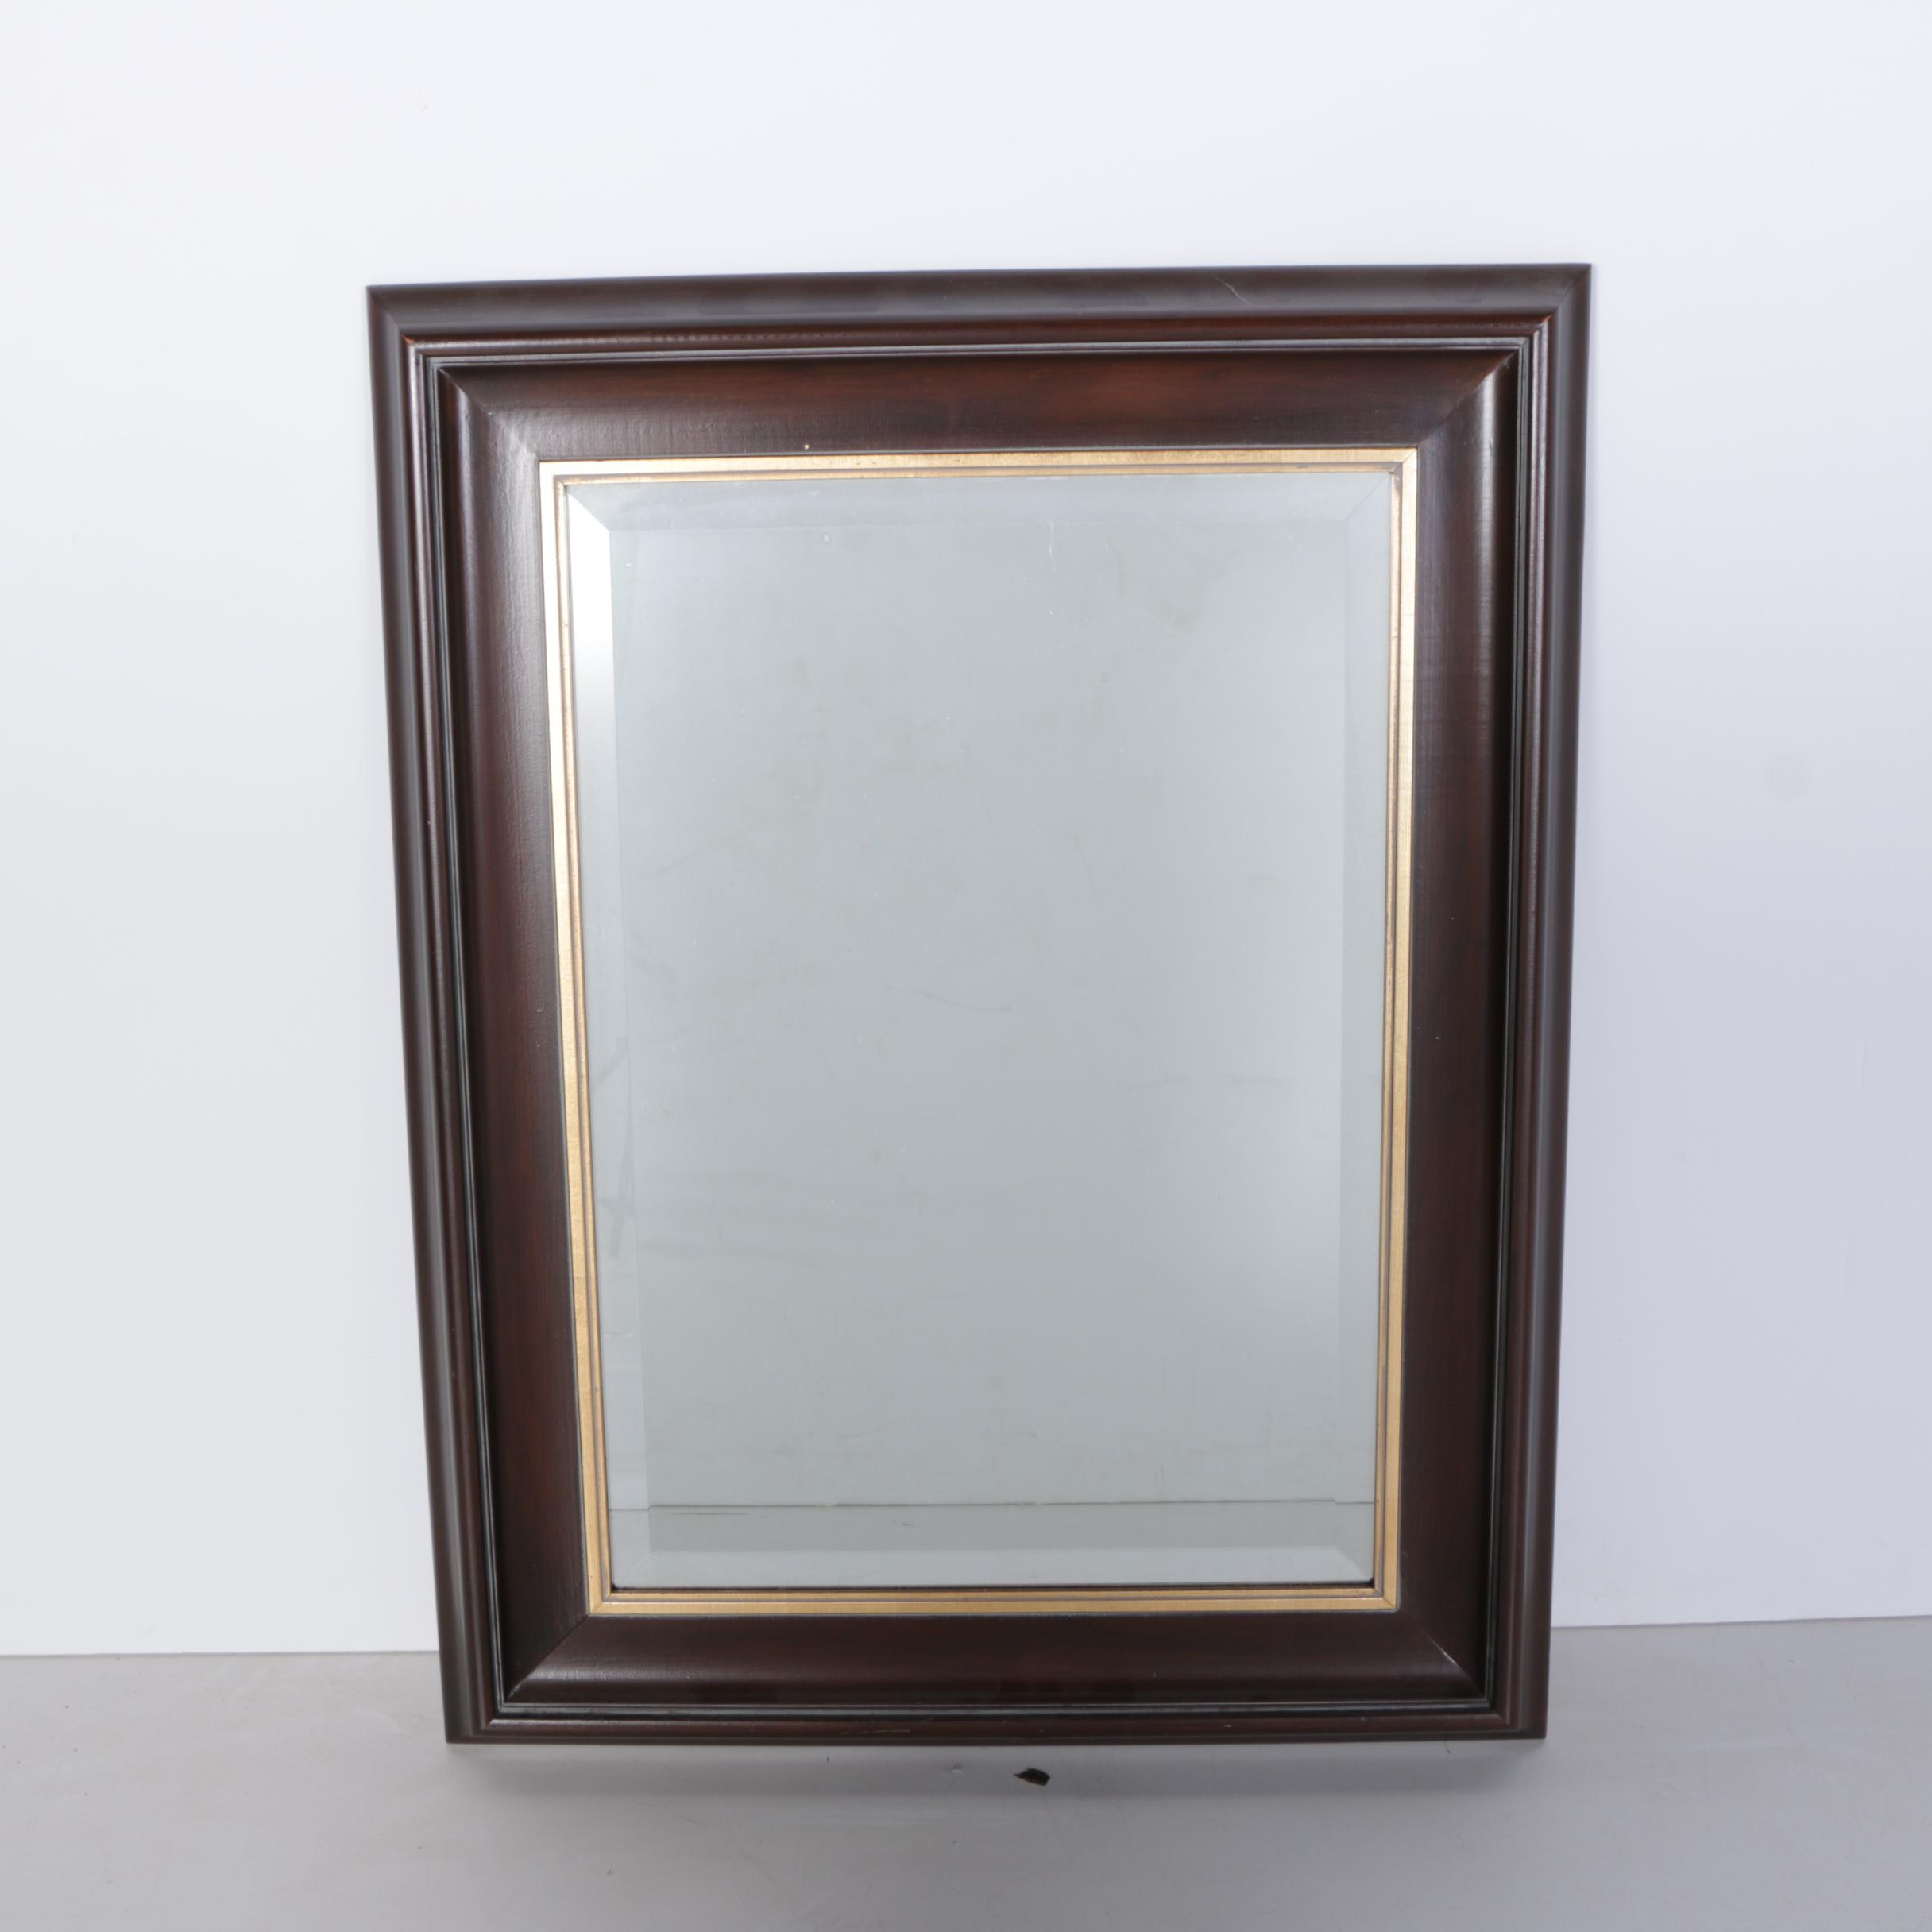 Two Toned Wood and Metal Framed Wall Mirror